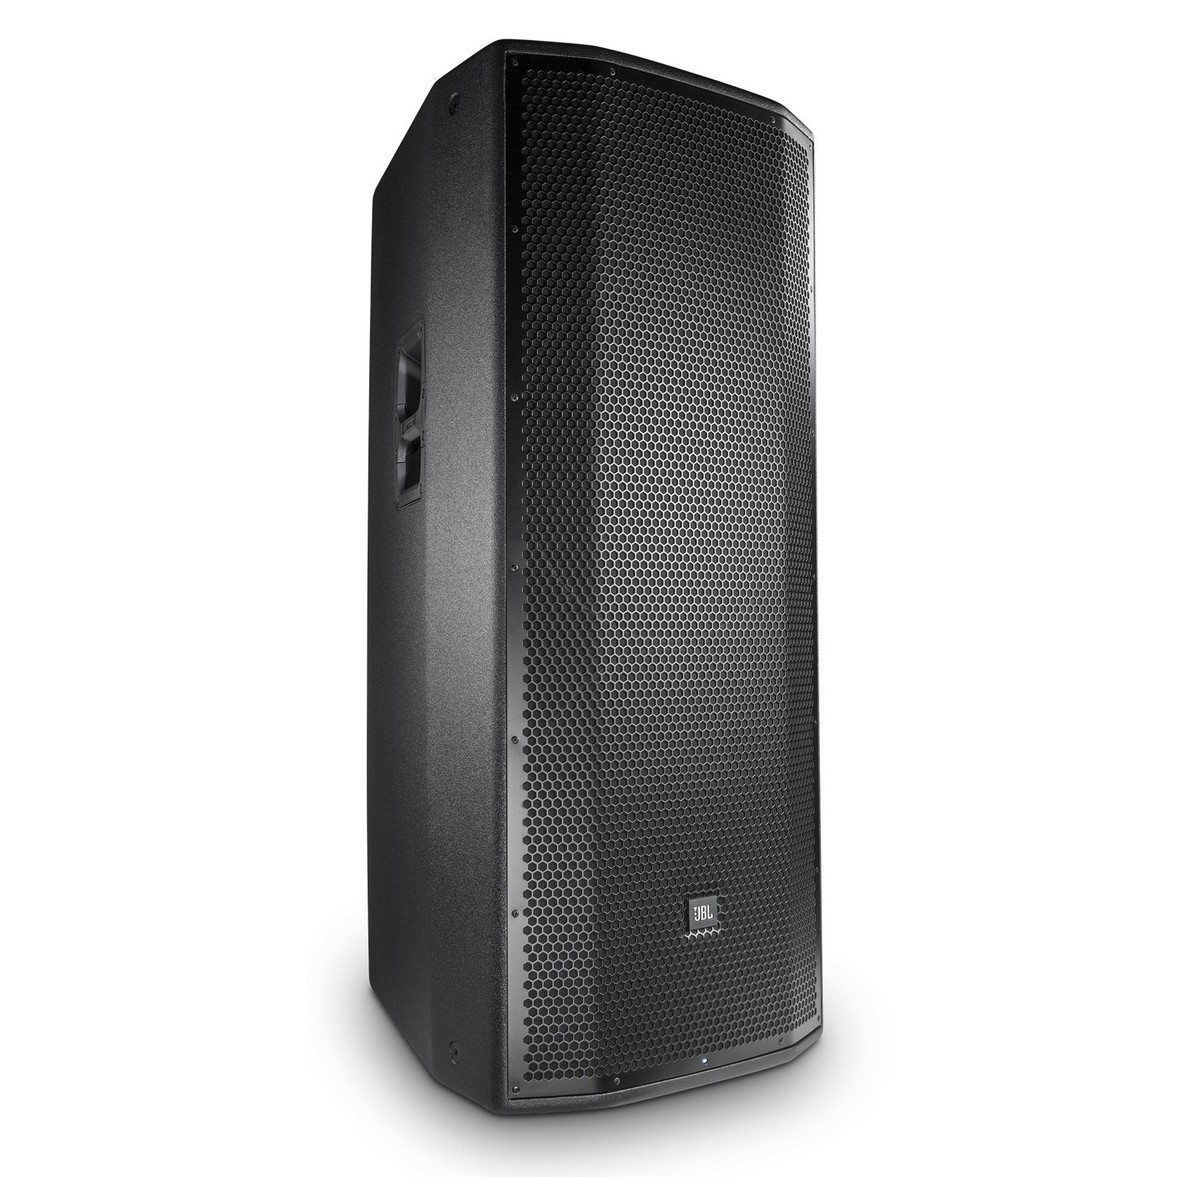 Jbl Prx825w Dual 15 Two Way Active Pa Speaker At Gear4music